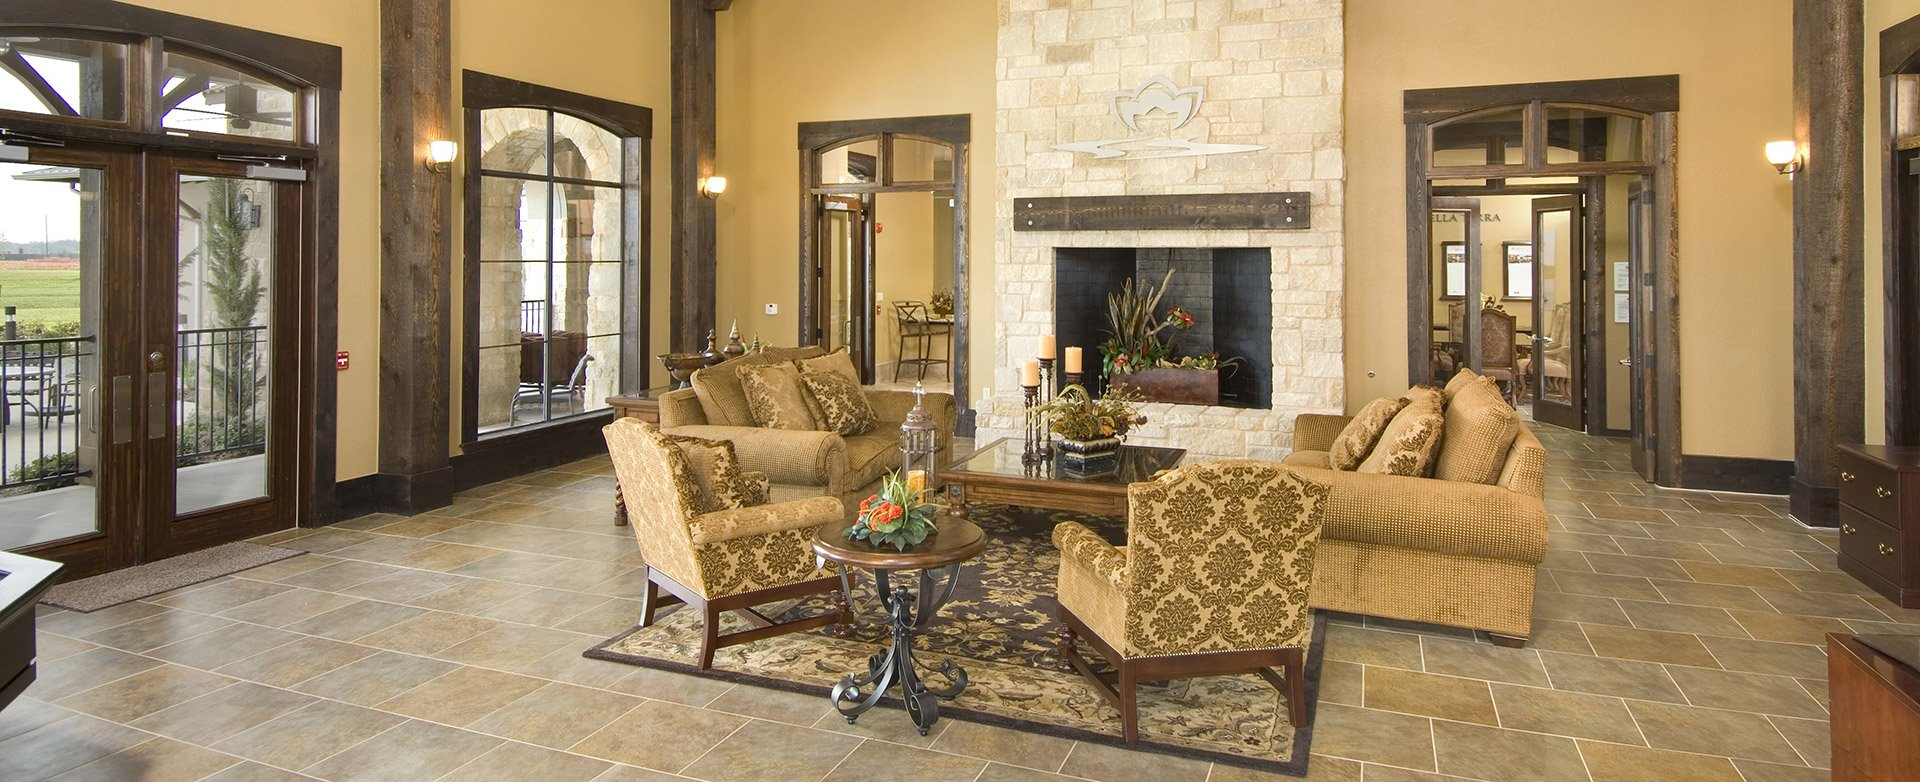 Family and luxury living at Bella Terra in Fort Bend County